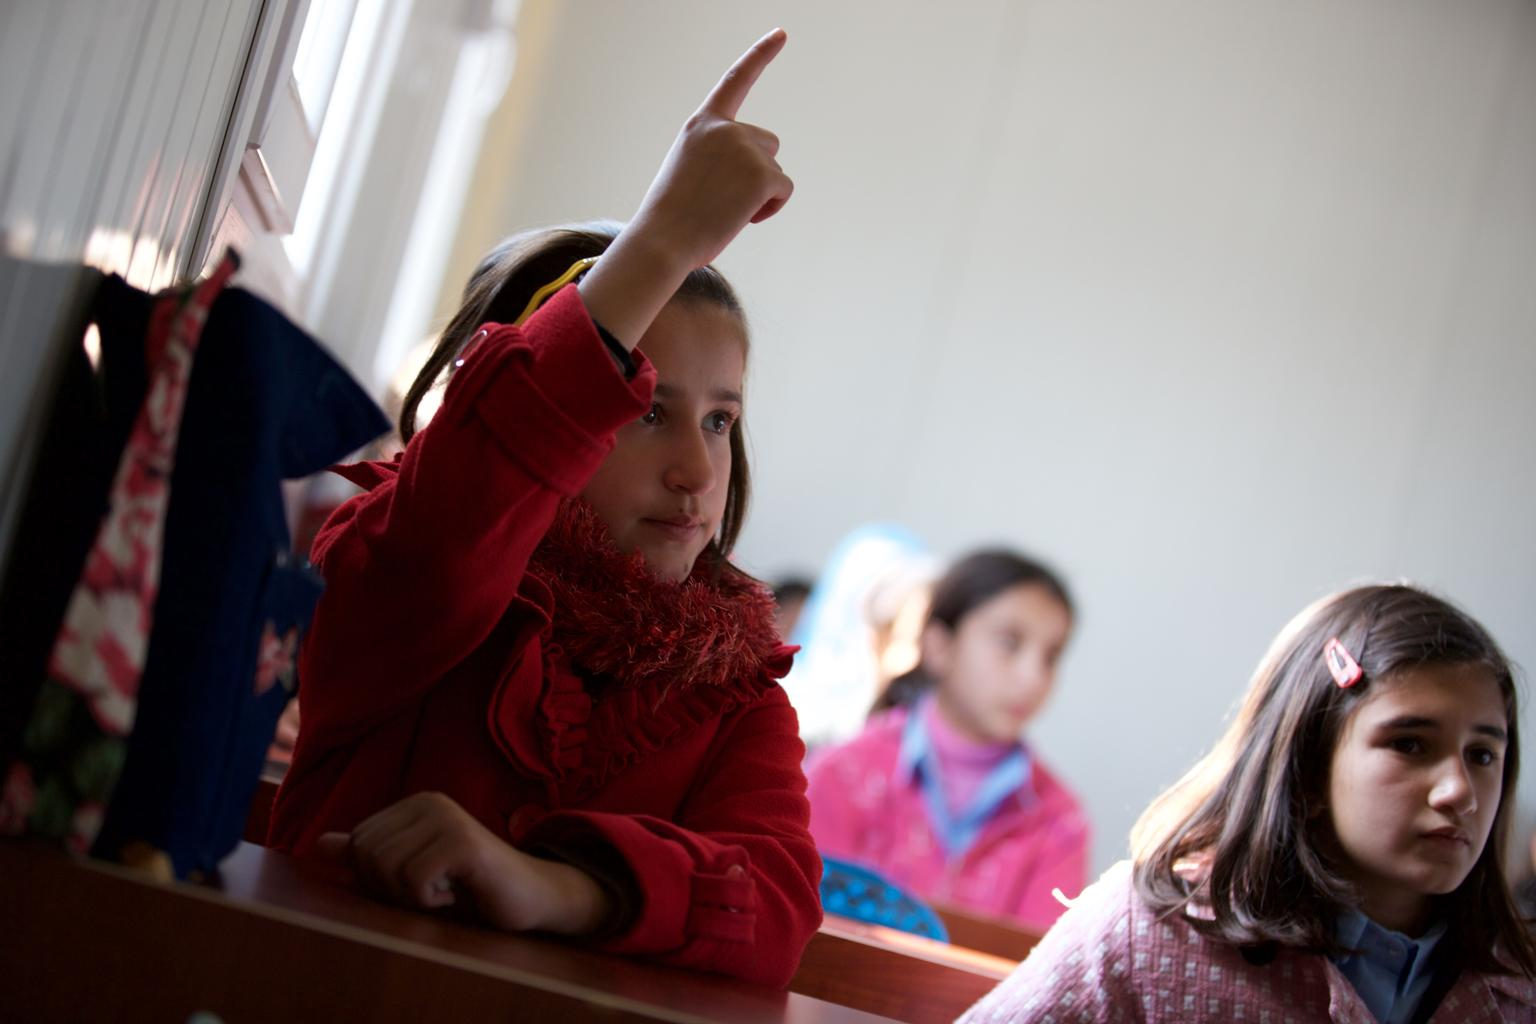 Safa (14) is a Syrian refugee who fled violence two years ago and now lives in Kawergosk camp in northern Iraq.